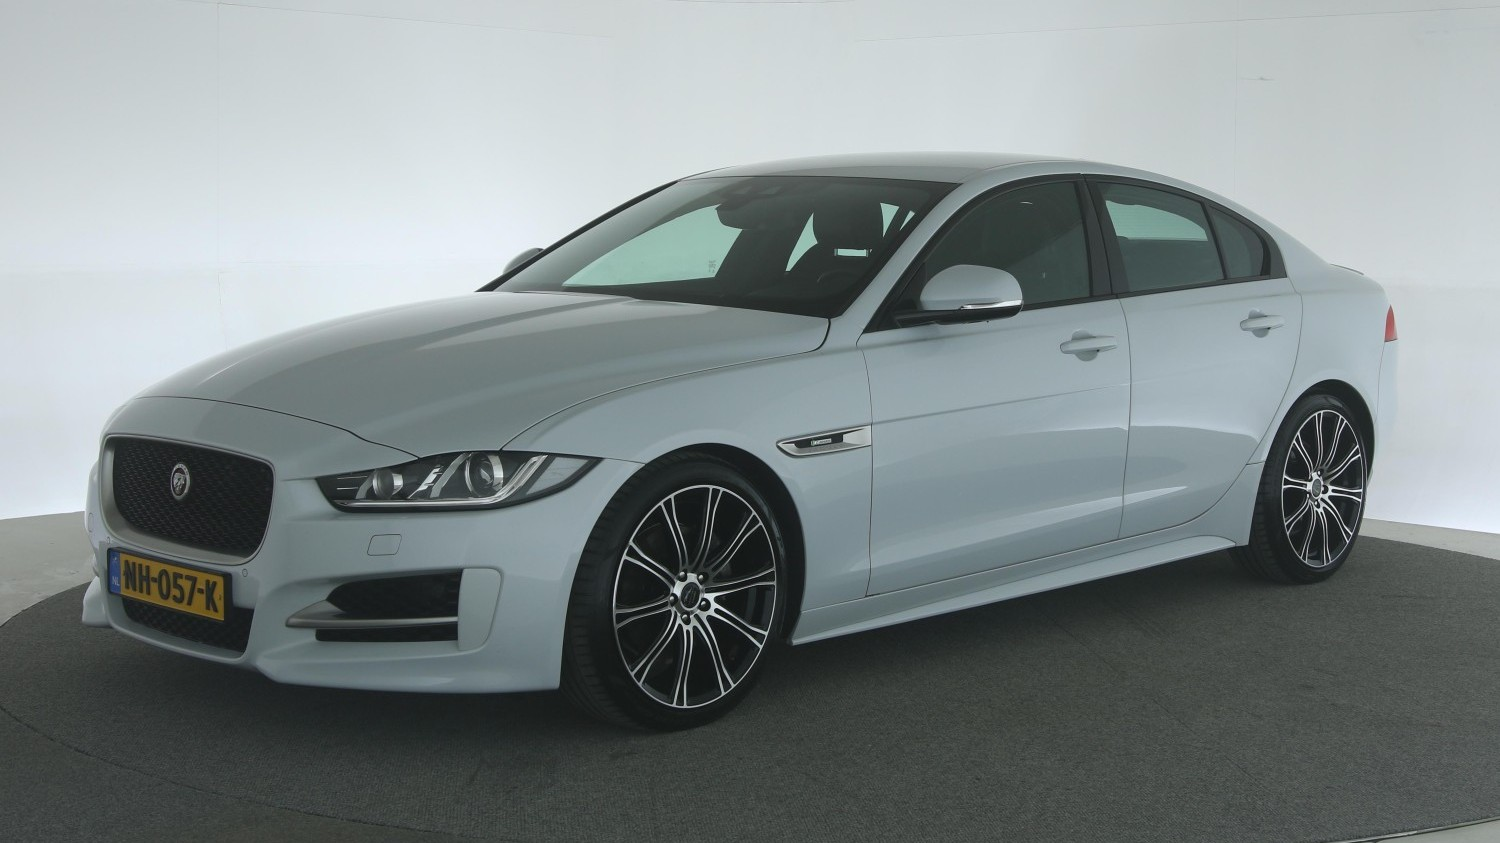 Jaguar XE Sedan 2017 NH-057-K 1